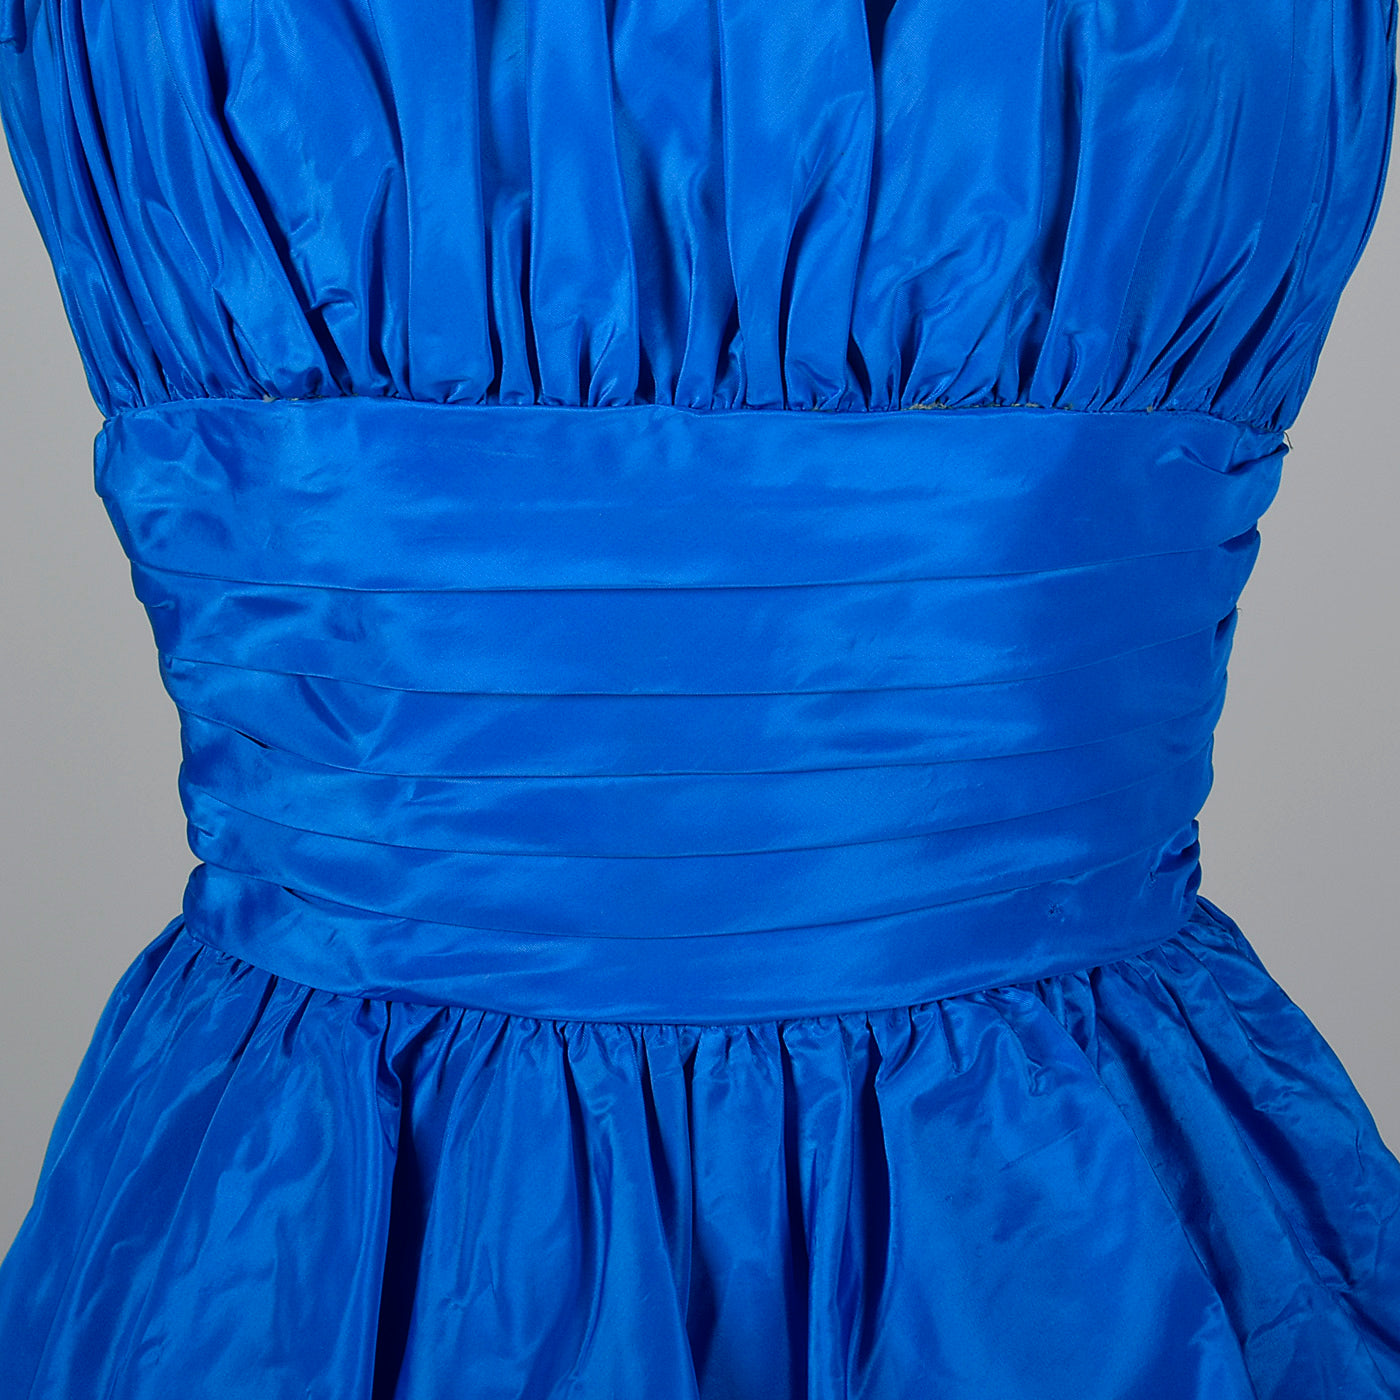 1950s Electric Blue Party Dress with Bubble Skirt